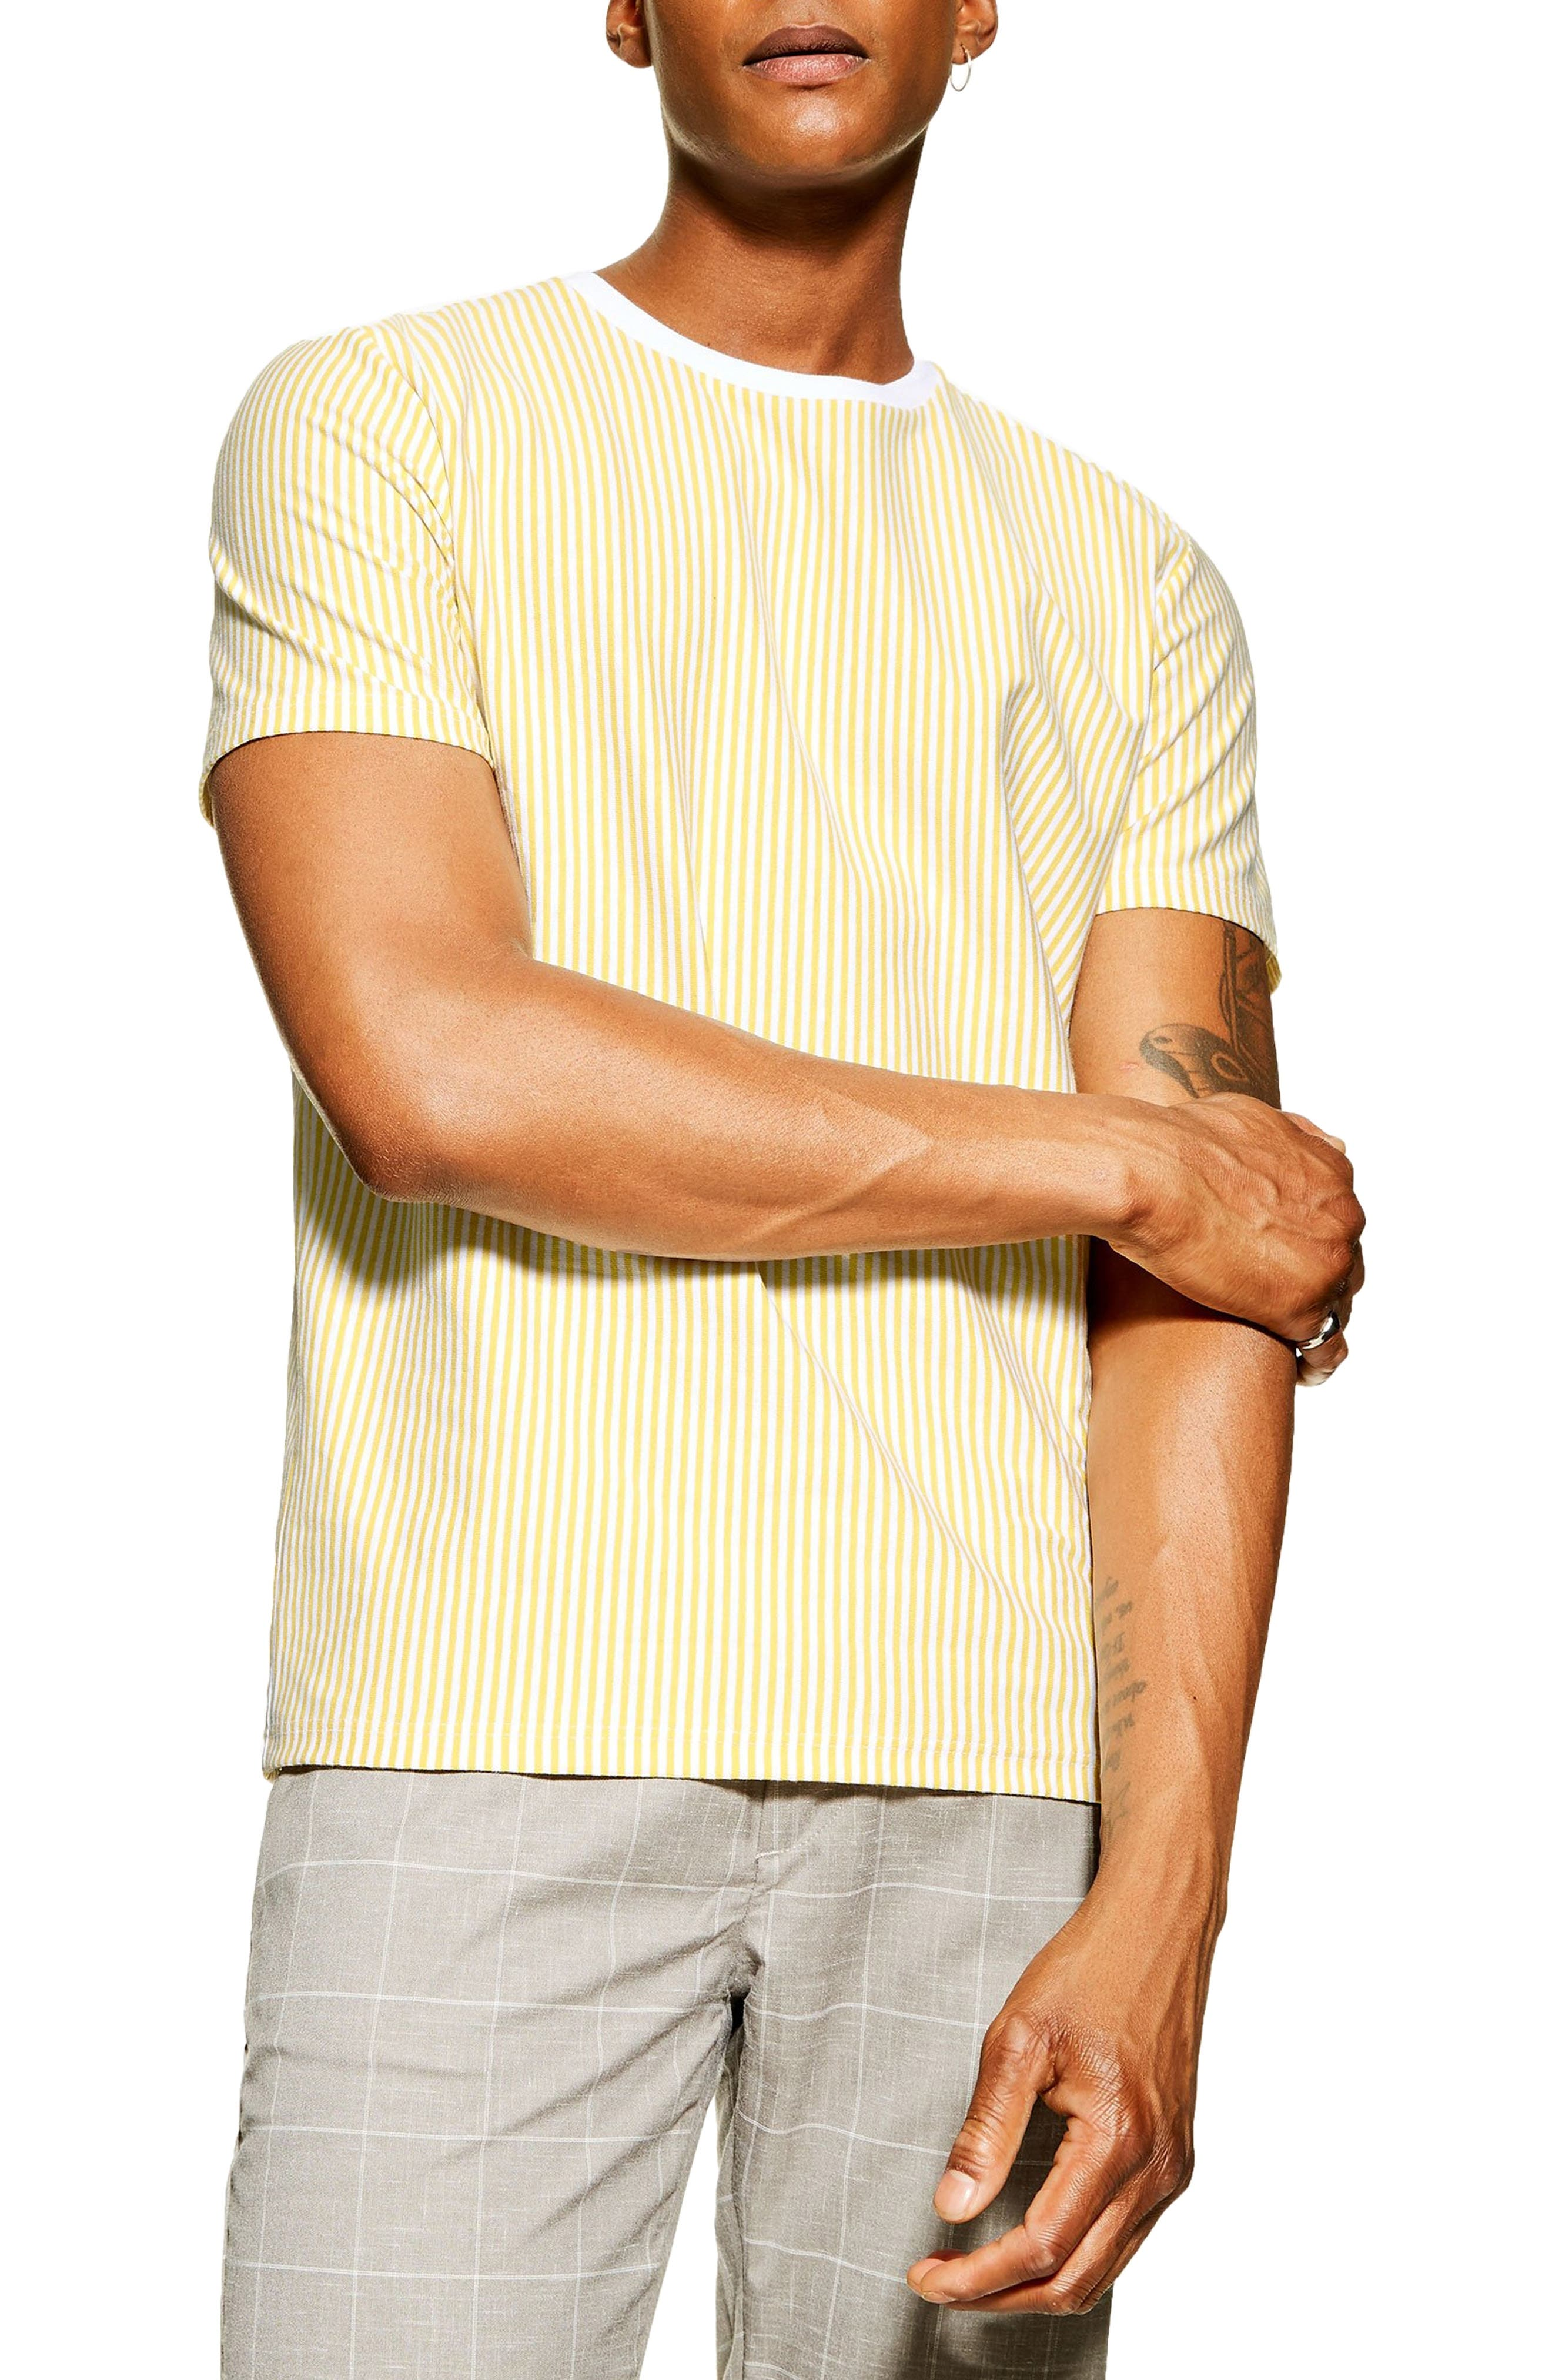 1940s Style Mens Shirts, Sweaters, Vests Mens Topman Vertical Stripe T-Shirt Size X-Large - Yellow $30.00 AT vintagedancer.com